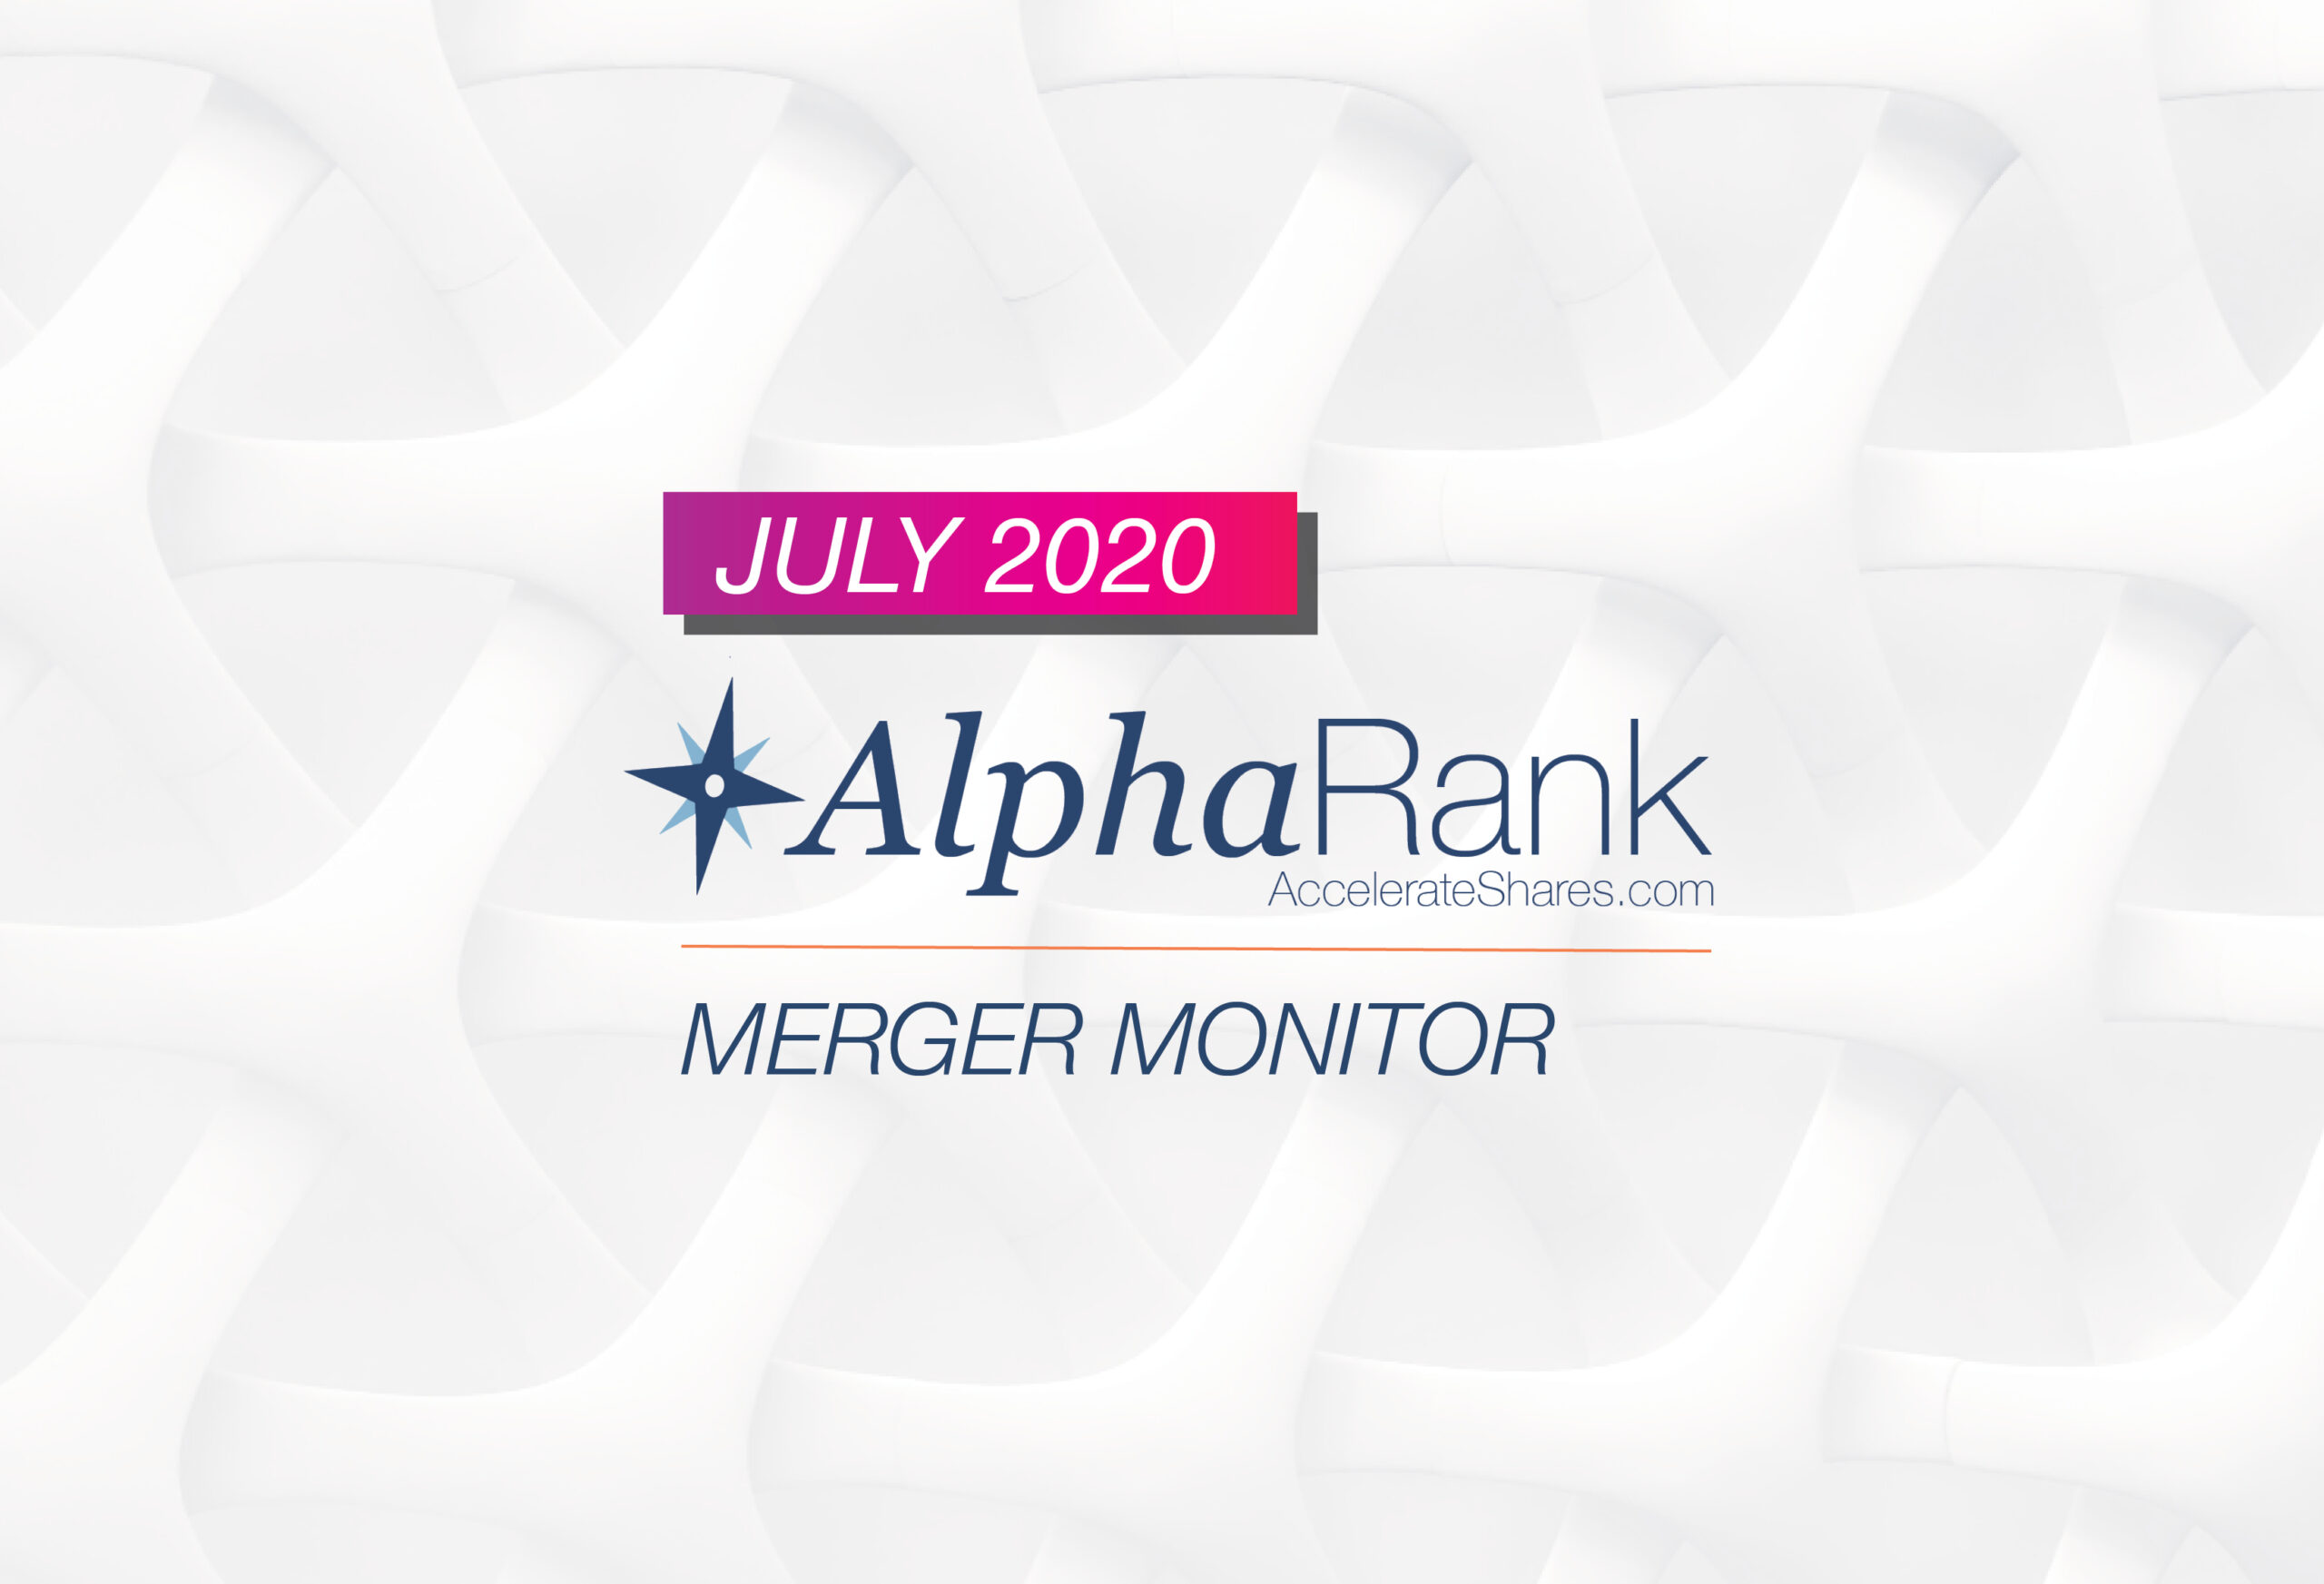 AlphaRank Merger Monitor – July 2020